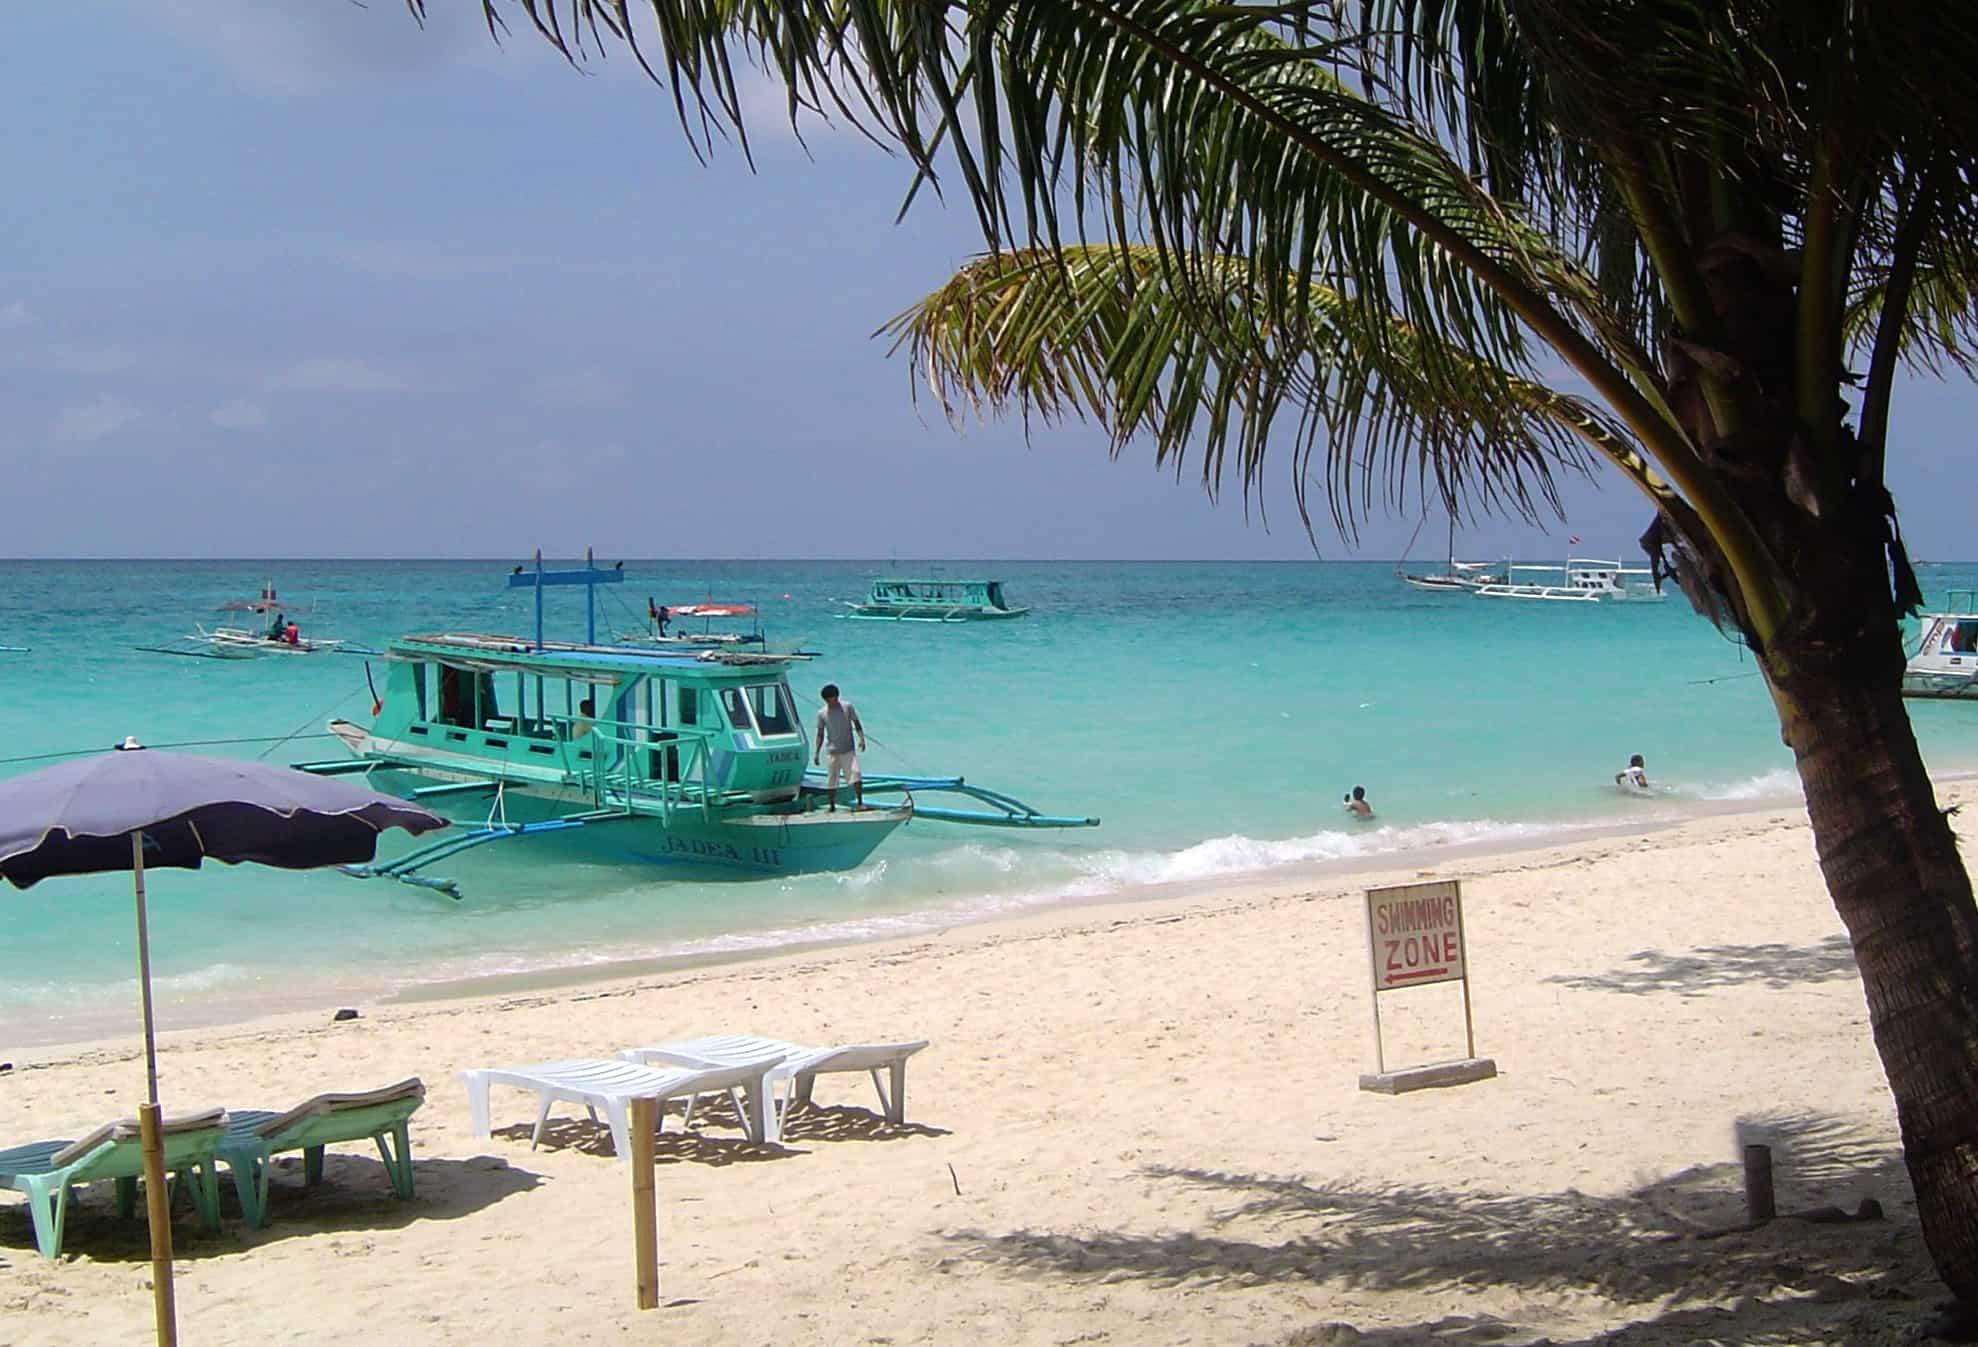 Boracay, Aklan - Family Destinations in the Philippines